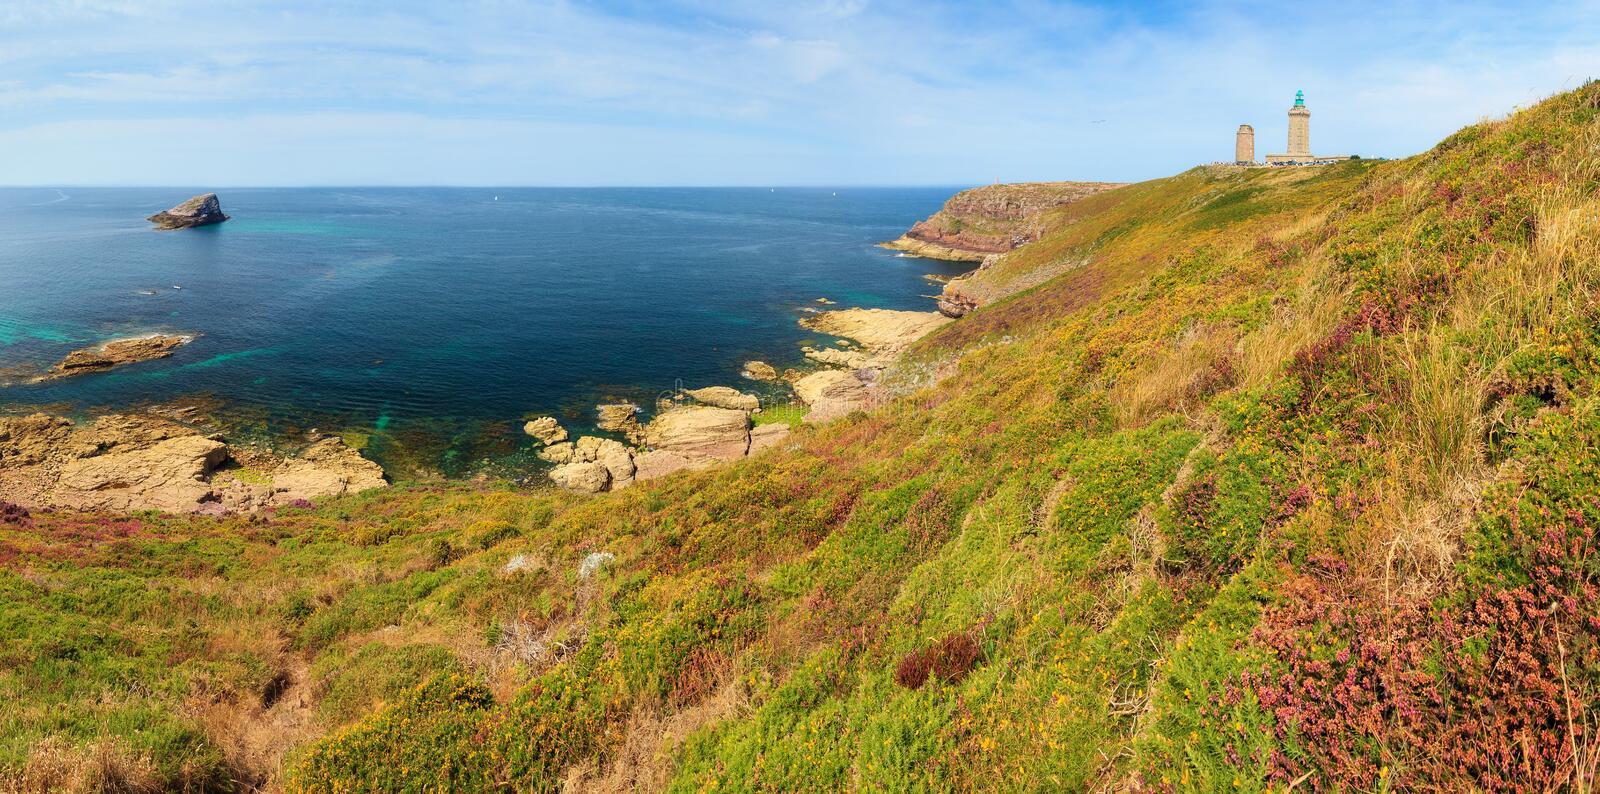 Coastline panorama at Cap Frehel. Beautiful 180 degree panoramic view of the cliffs at Cap Fréhel in Brittany, France, with its lighthouses and moorland with royalty free stock photo